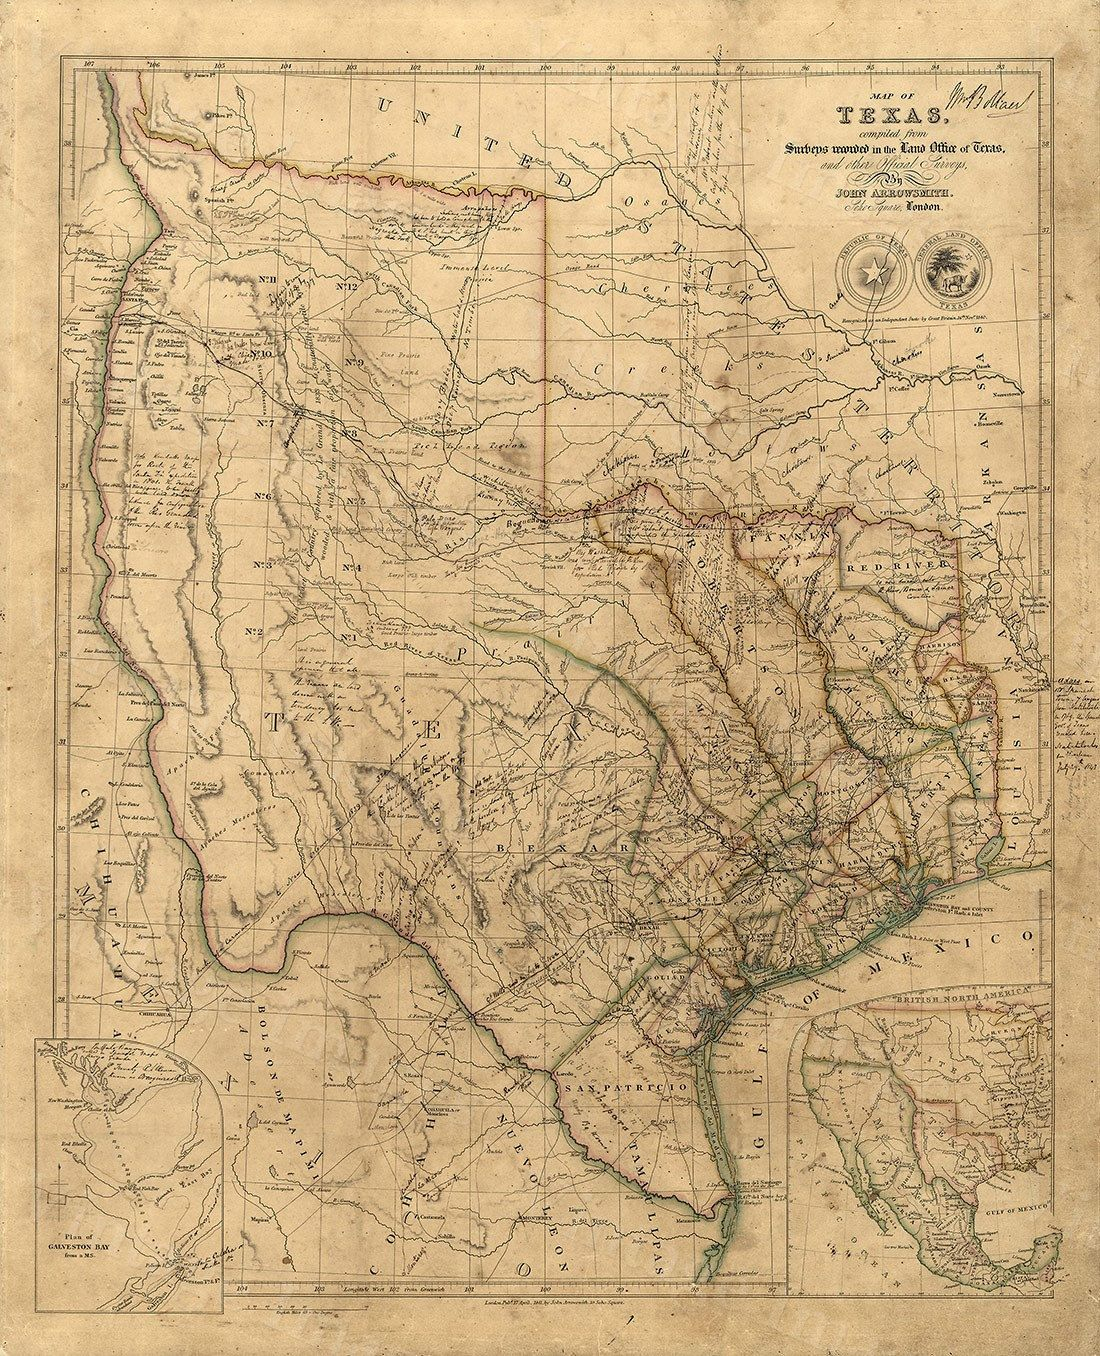 Old Texas Wall Map 1841 Historical Texas Map Antique Decorator Style - Texas Historical Maps